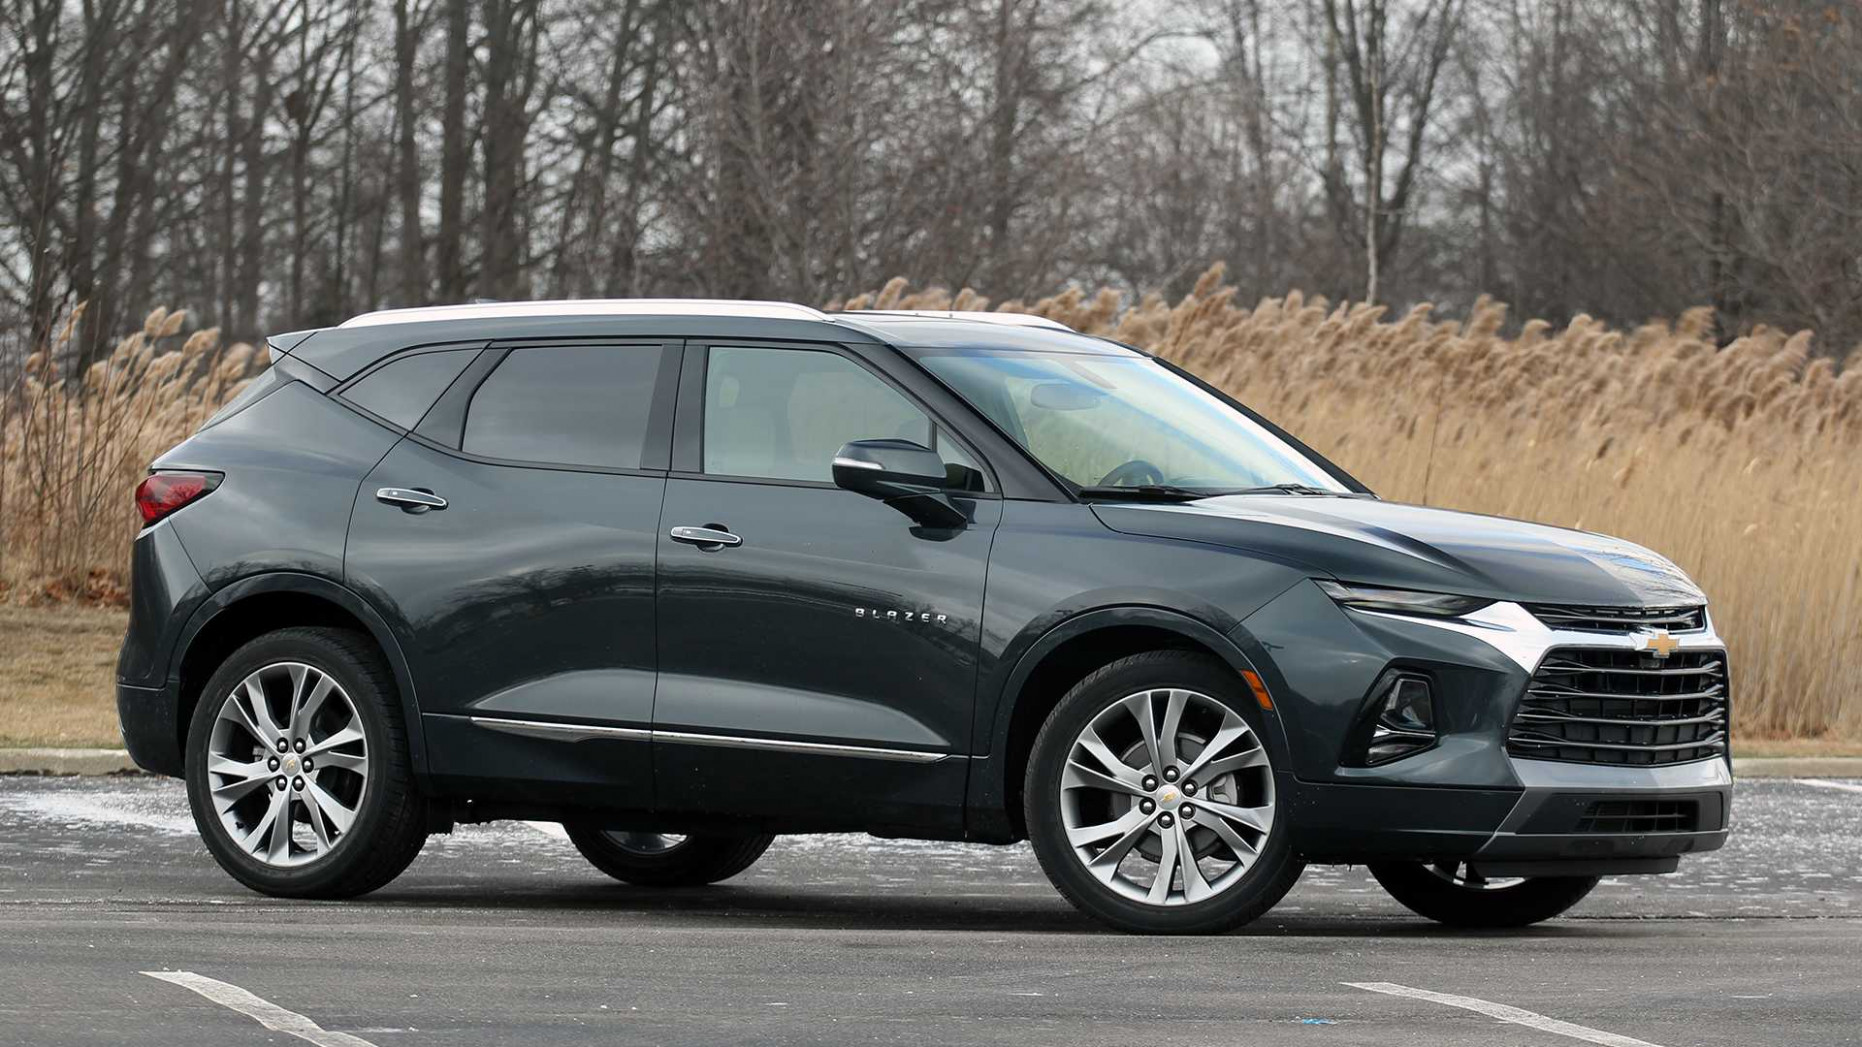 9 Chevy Blazer Premier AWD Review: Camaro Utility Vehicle